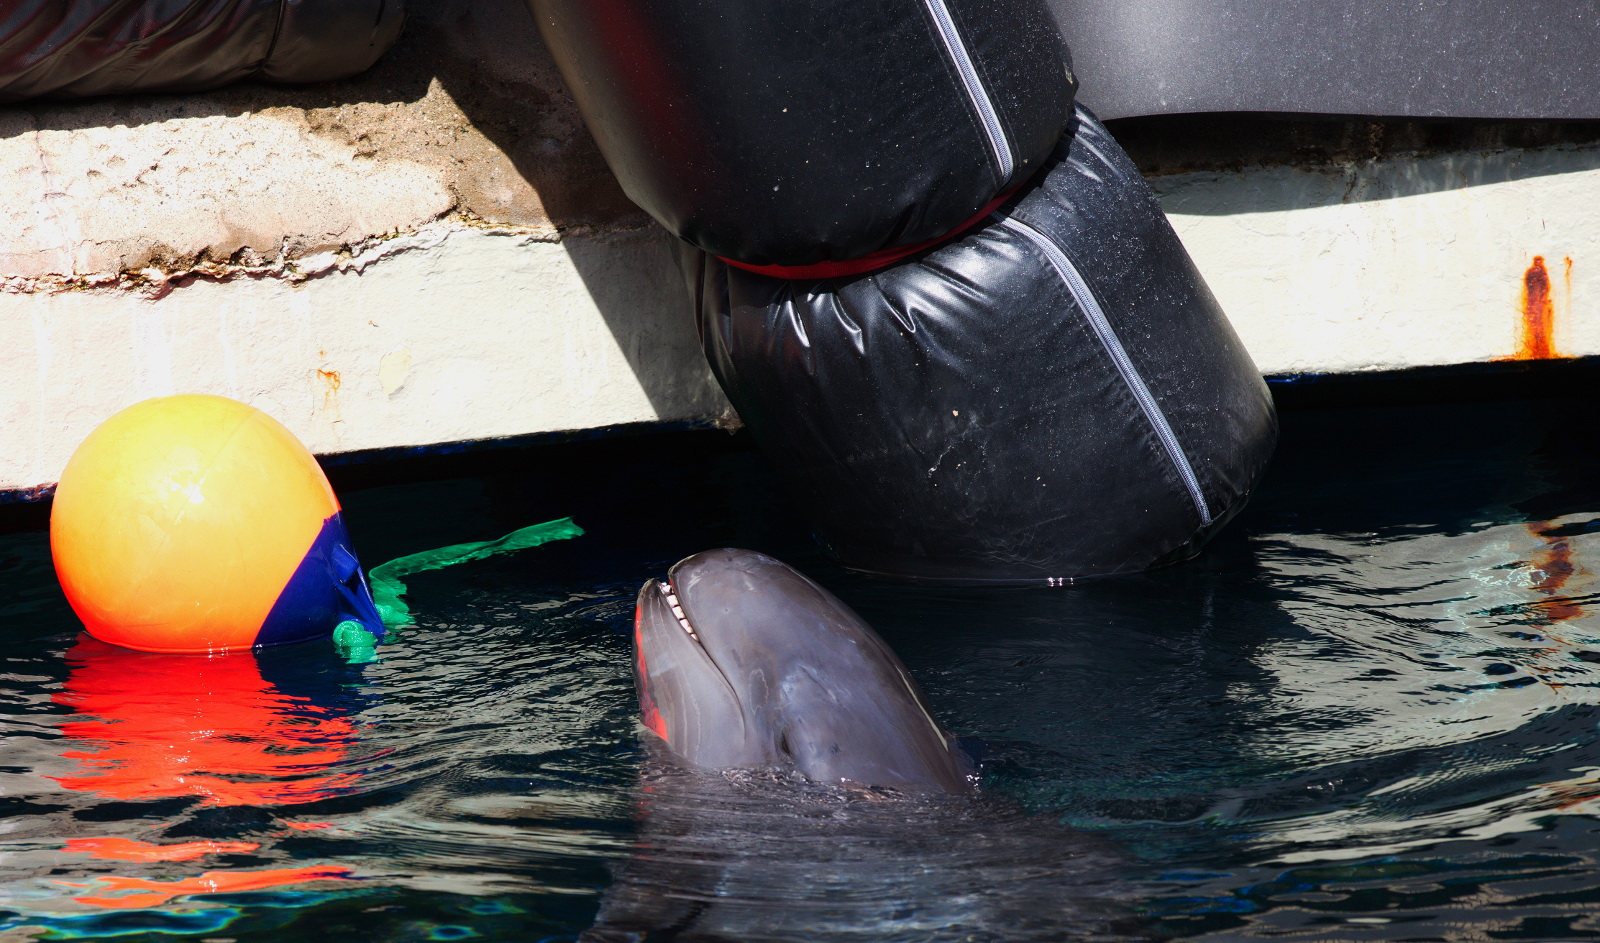 Why Was Release Never Considered for Rescued Whale at Vancouver Aquarium Rehabilitation Centre?